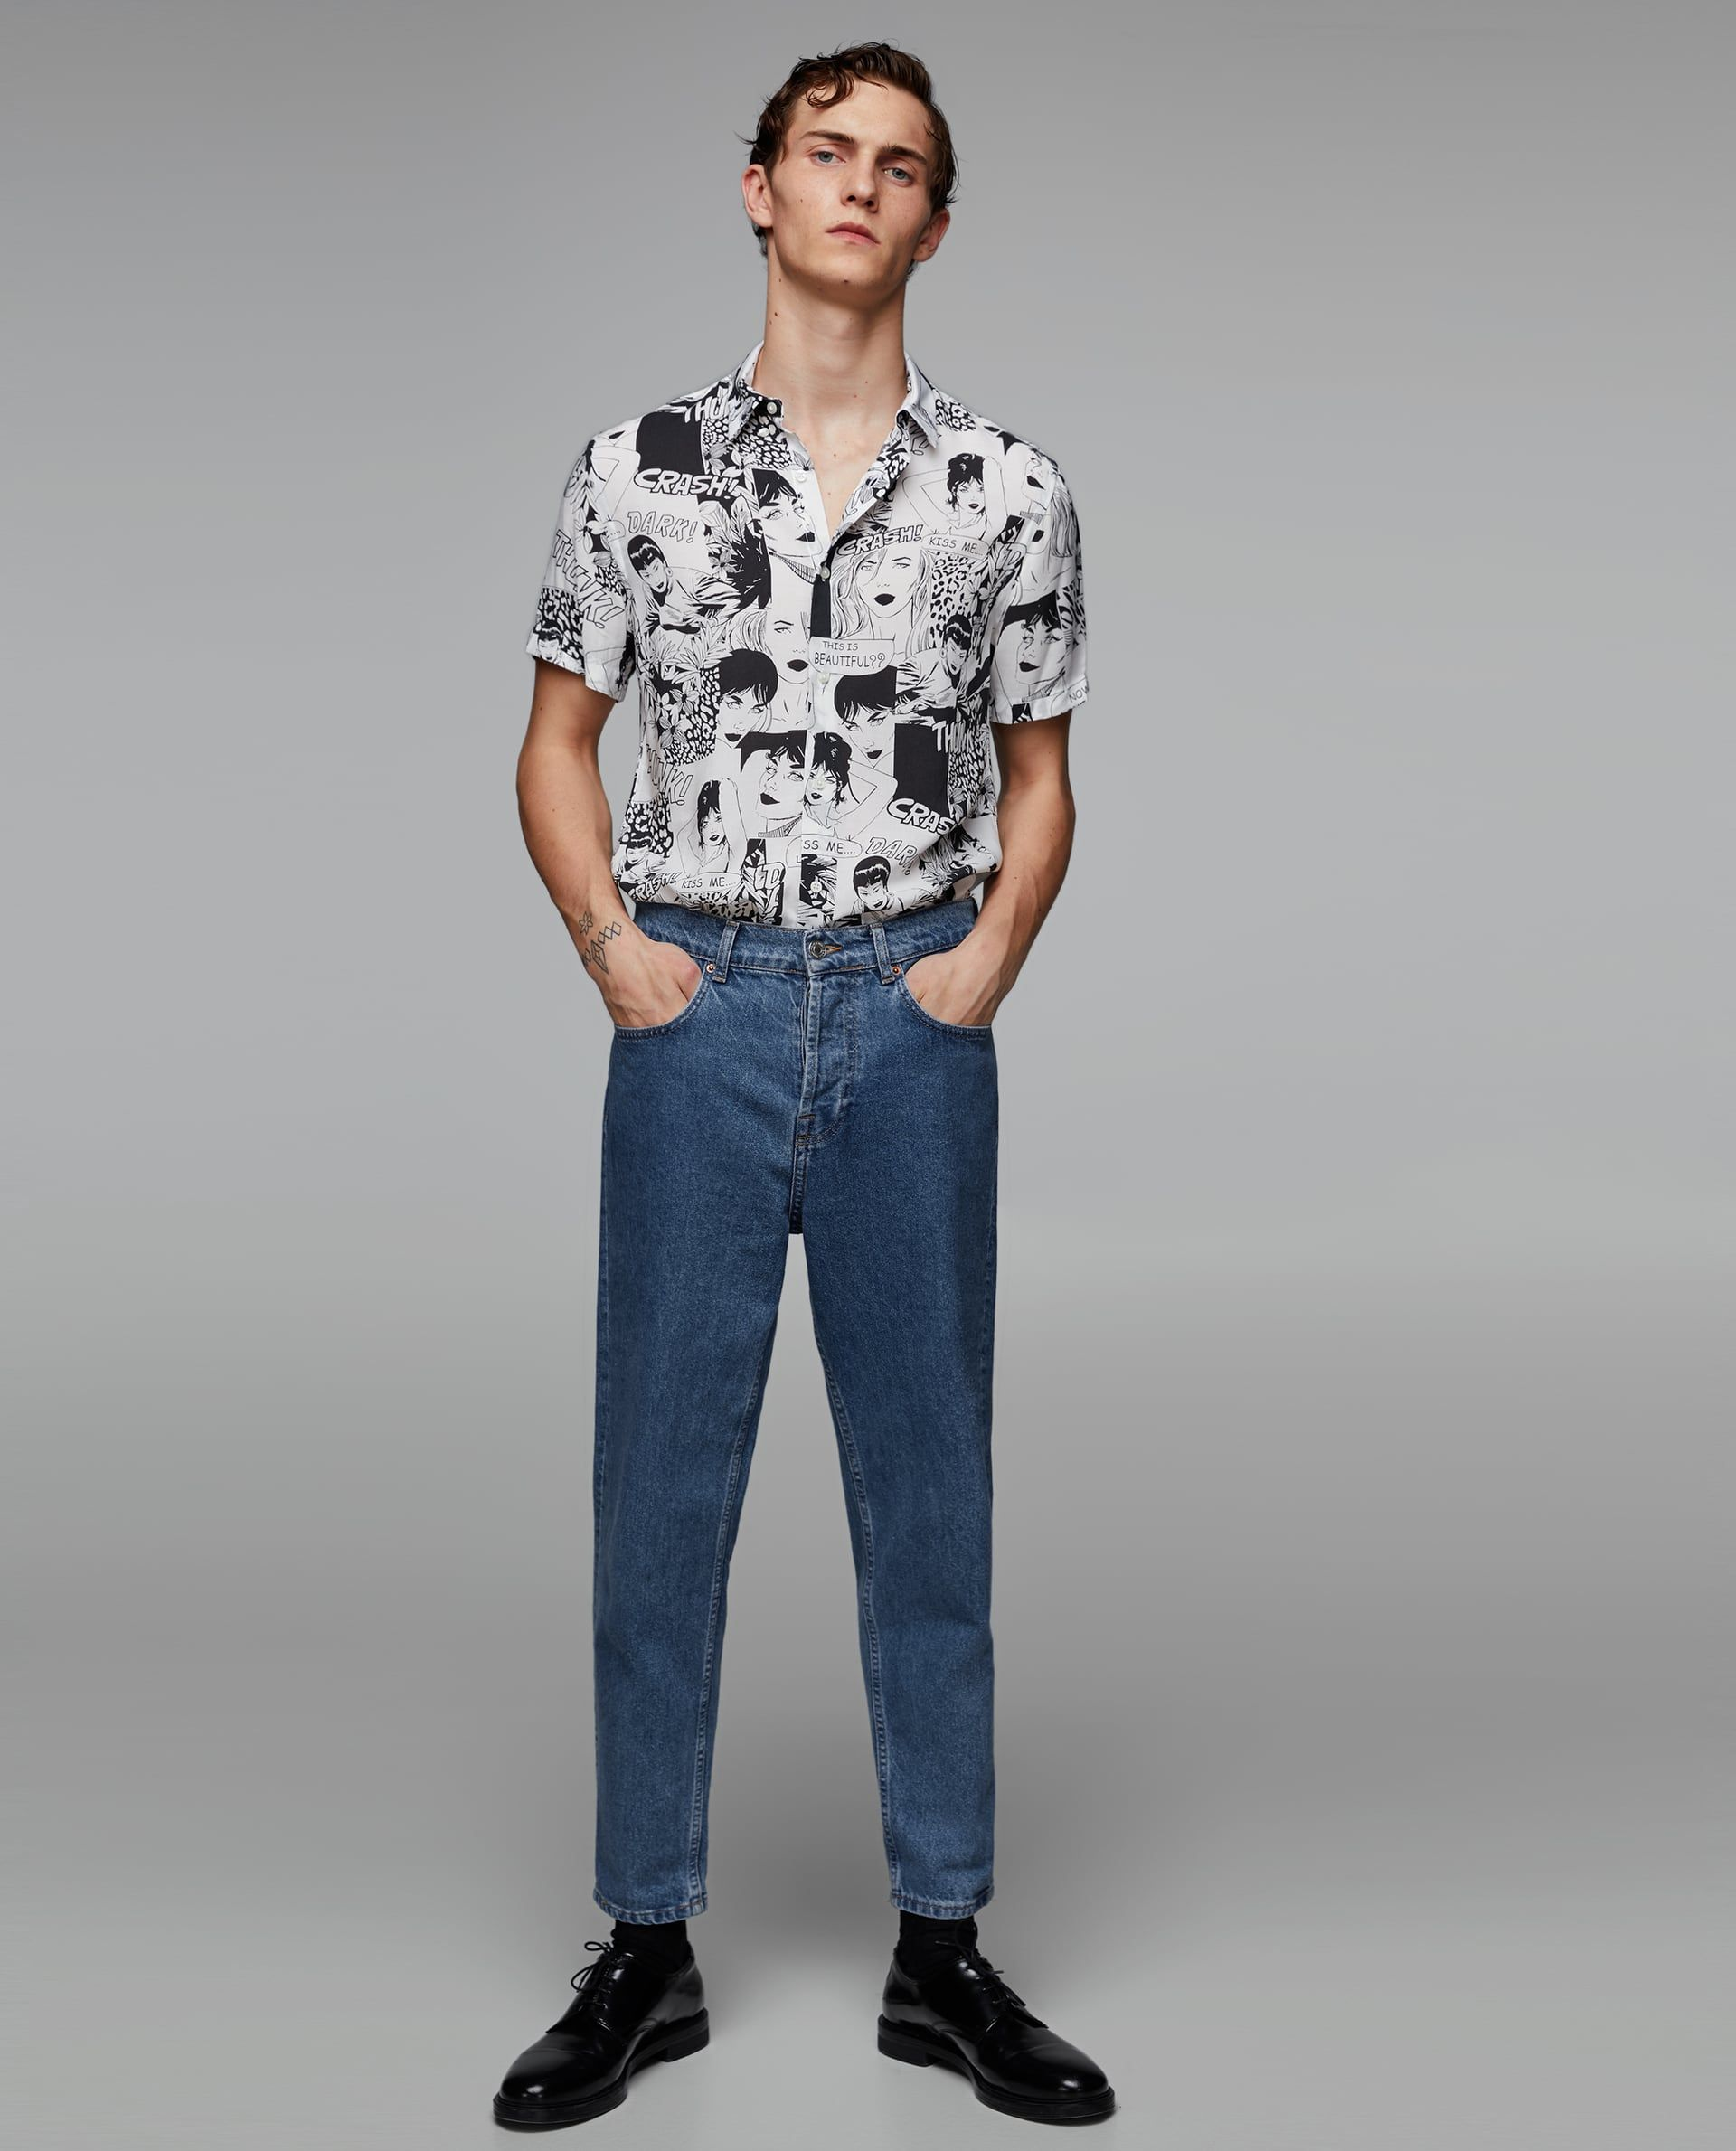 44a30b8f Image 1 of COMIC STRIP PRINT SHIRT from Zara   New! in 2019 ...